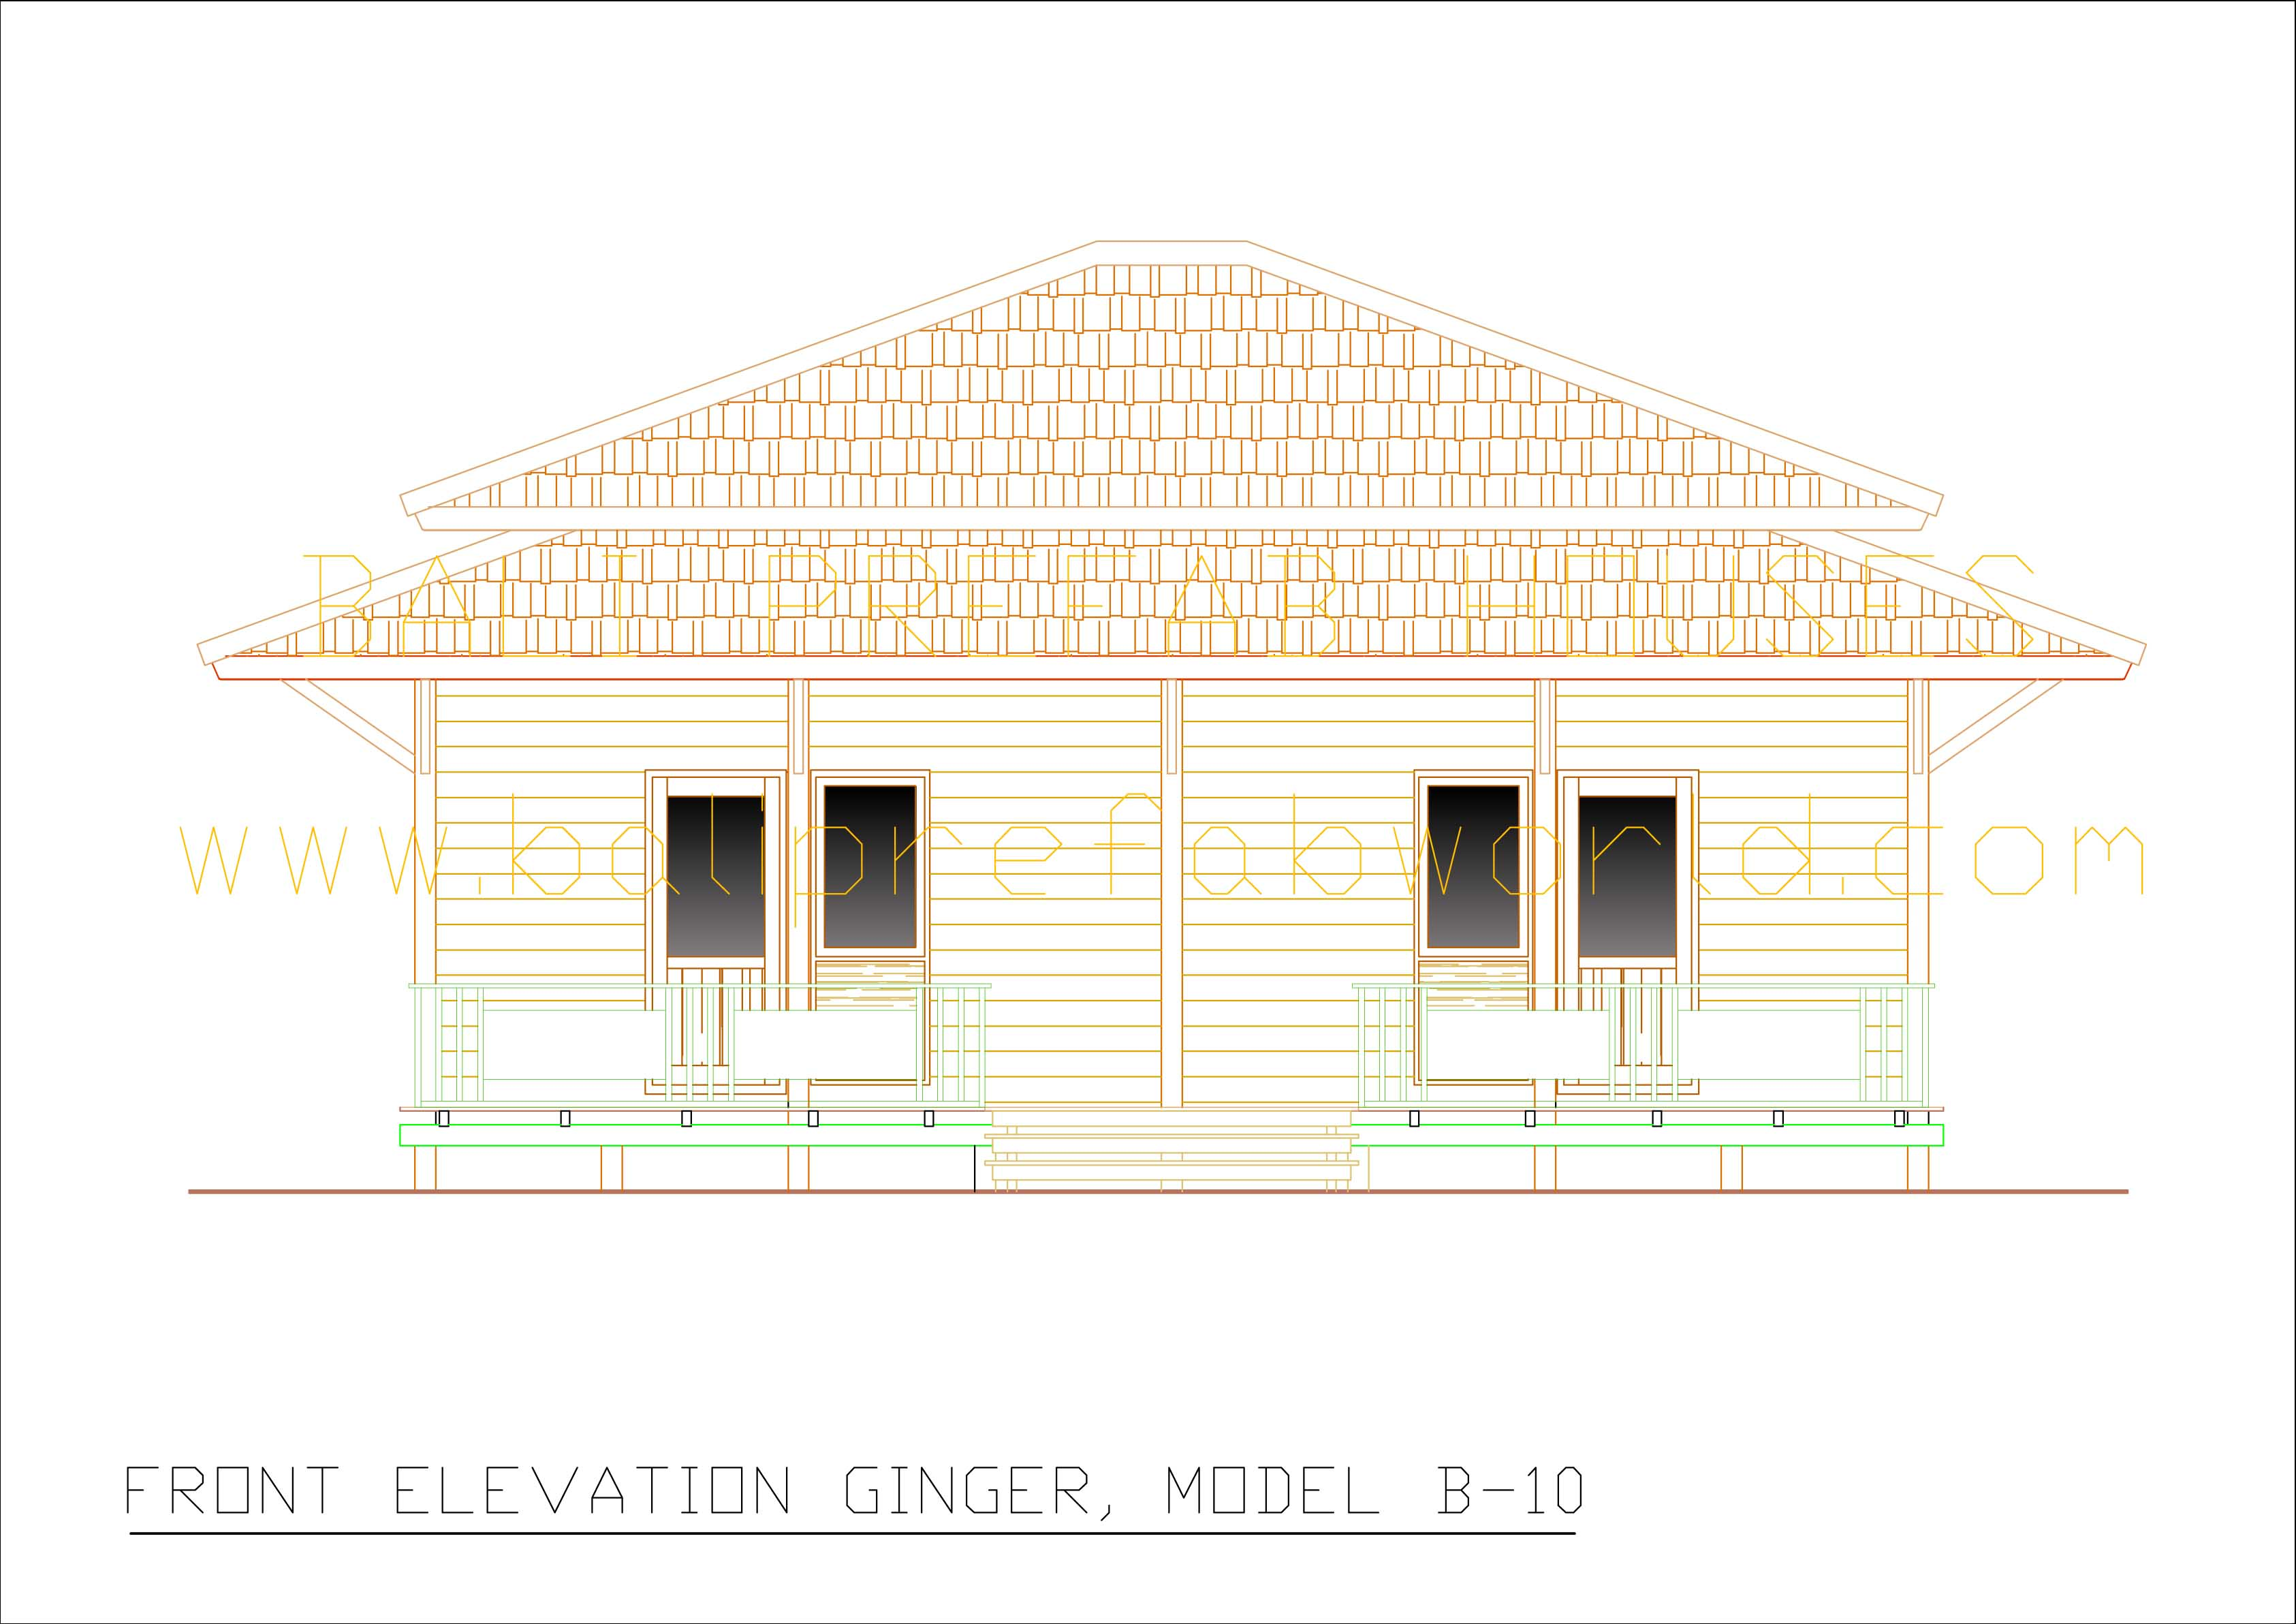 Ginger front elevation